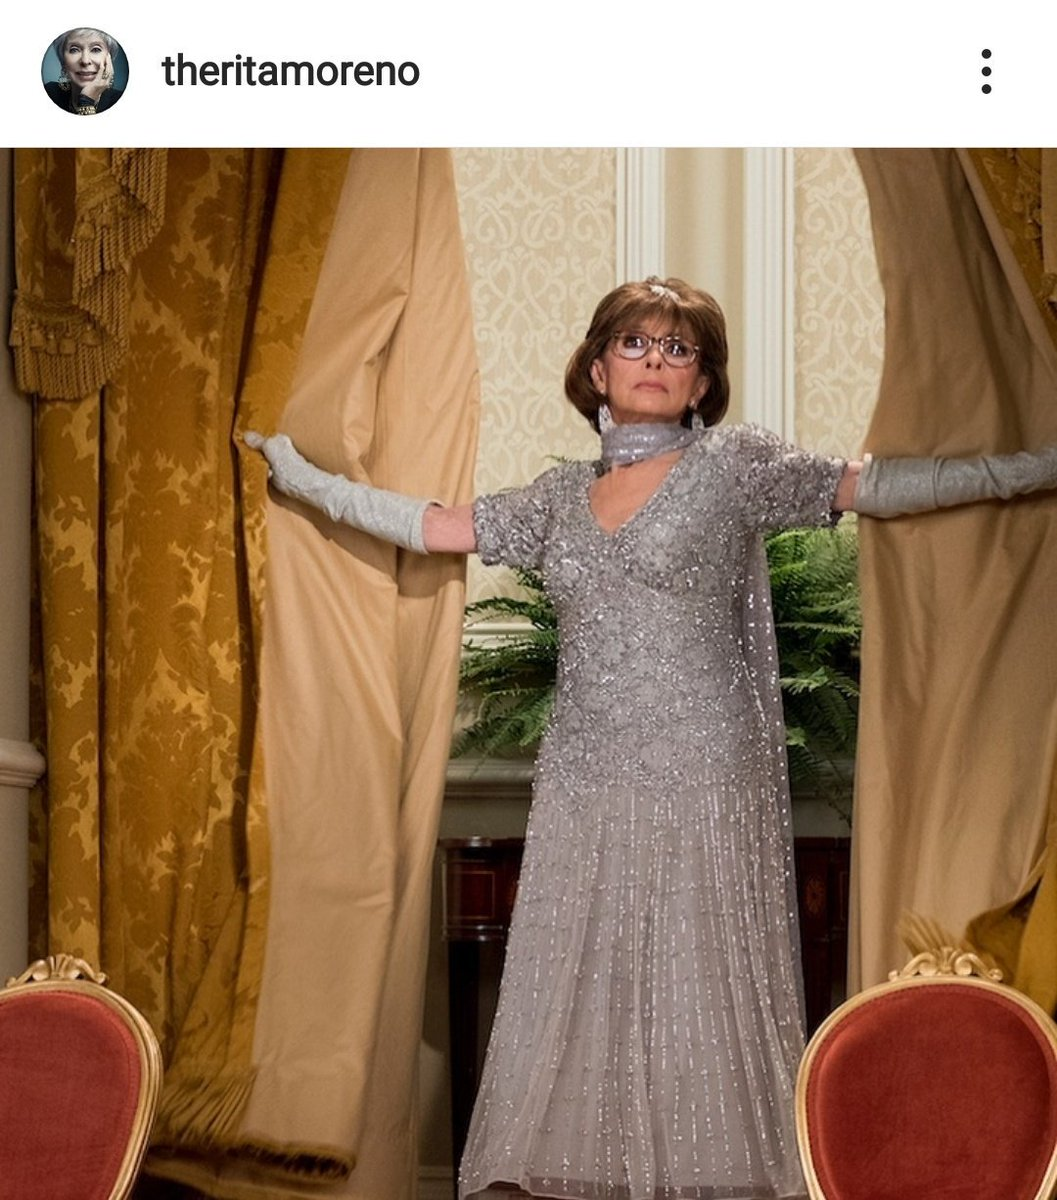 Wow. @netflix Y&#39;ALL DID THAT. YOU MADE THE LIVING LEGEND RITA MORENO SAD. EGOT LEGEND RITA MORENO WAS IN YOUR SHOW AND YOU CANCELED IT. The idiocy is unimaginable... #SAVEODAAT<br>http://pic.twitter.com/zJiIpoB4PE